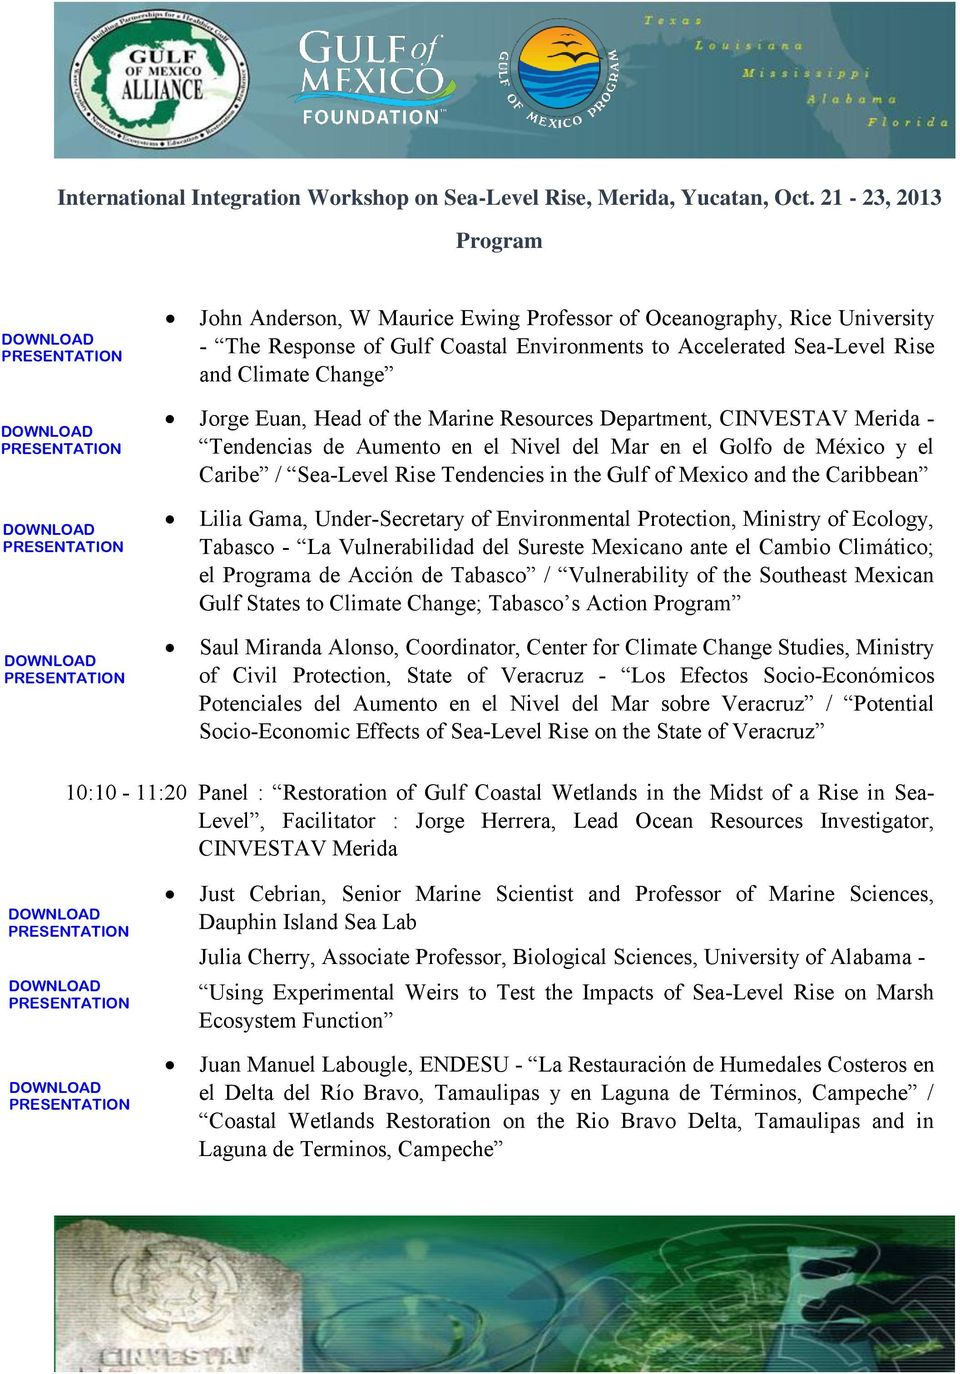 Under-Secretary of Environmental Protection, Ministry of Ecology, Tabasco - La Vulnerabilidad del Sureste Mexicano ante el Cambio Climático; el a de Acción de Tabasco / Vulnerability of the Southeast